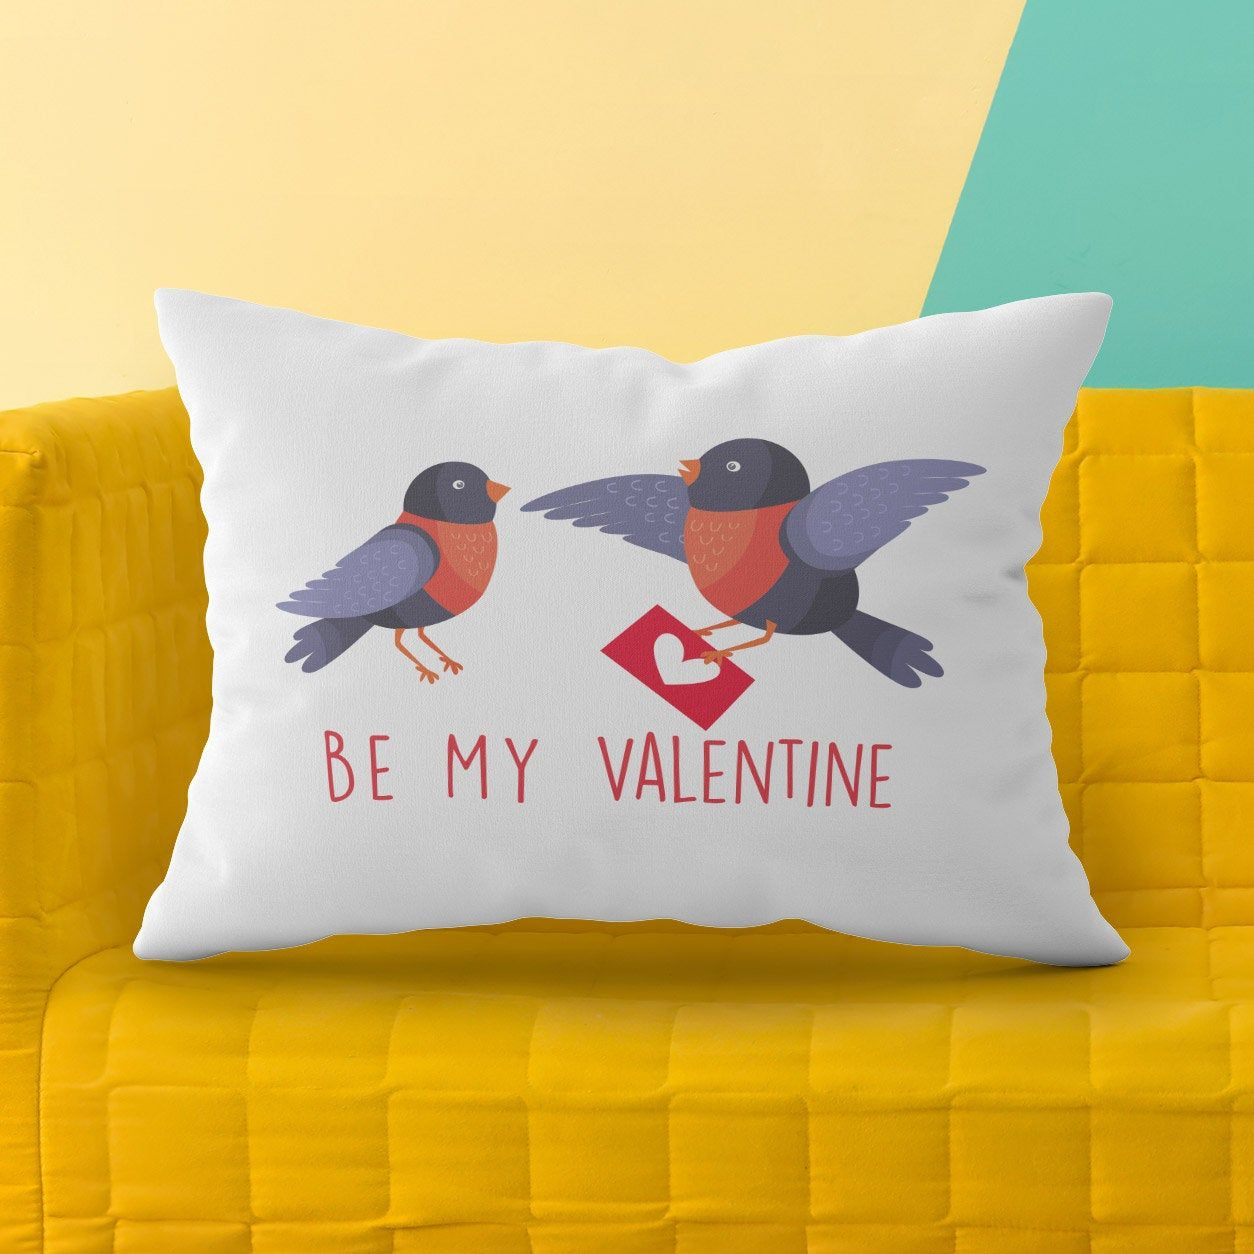 Be my Valentine Pillow Cover, Pillow Covers 20x30, Gift Ideas for Girlfriend, Valentine's Day Gift for Boyfriend, Custom Pillow Case